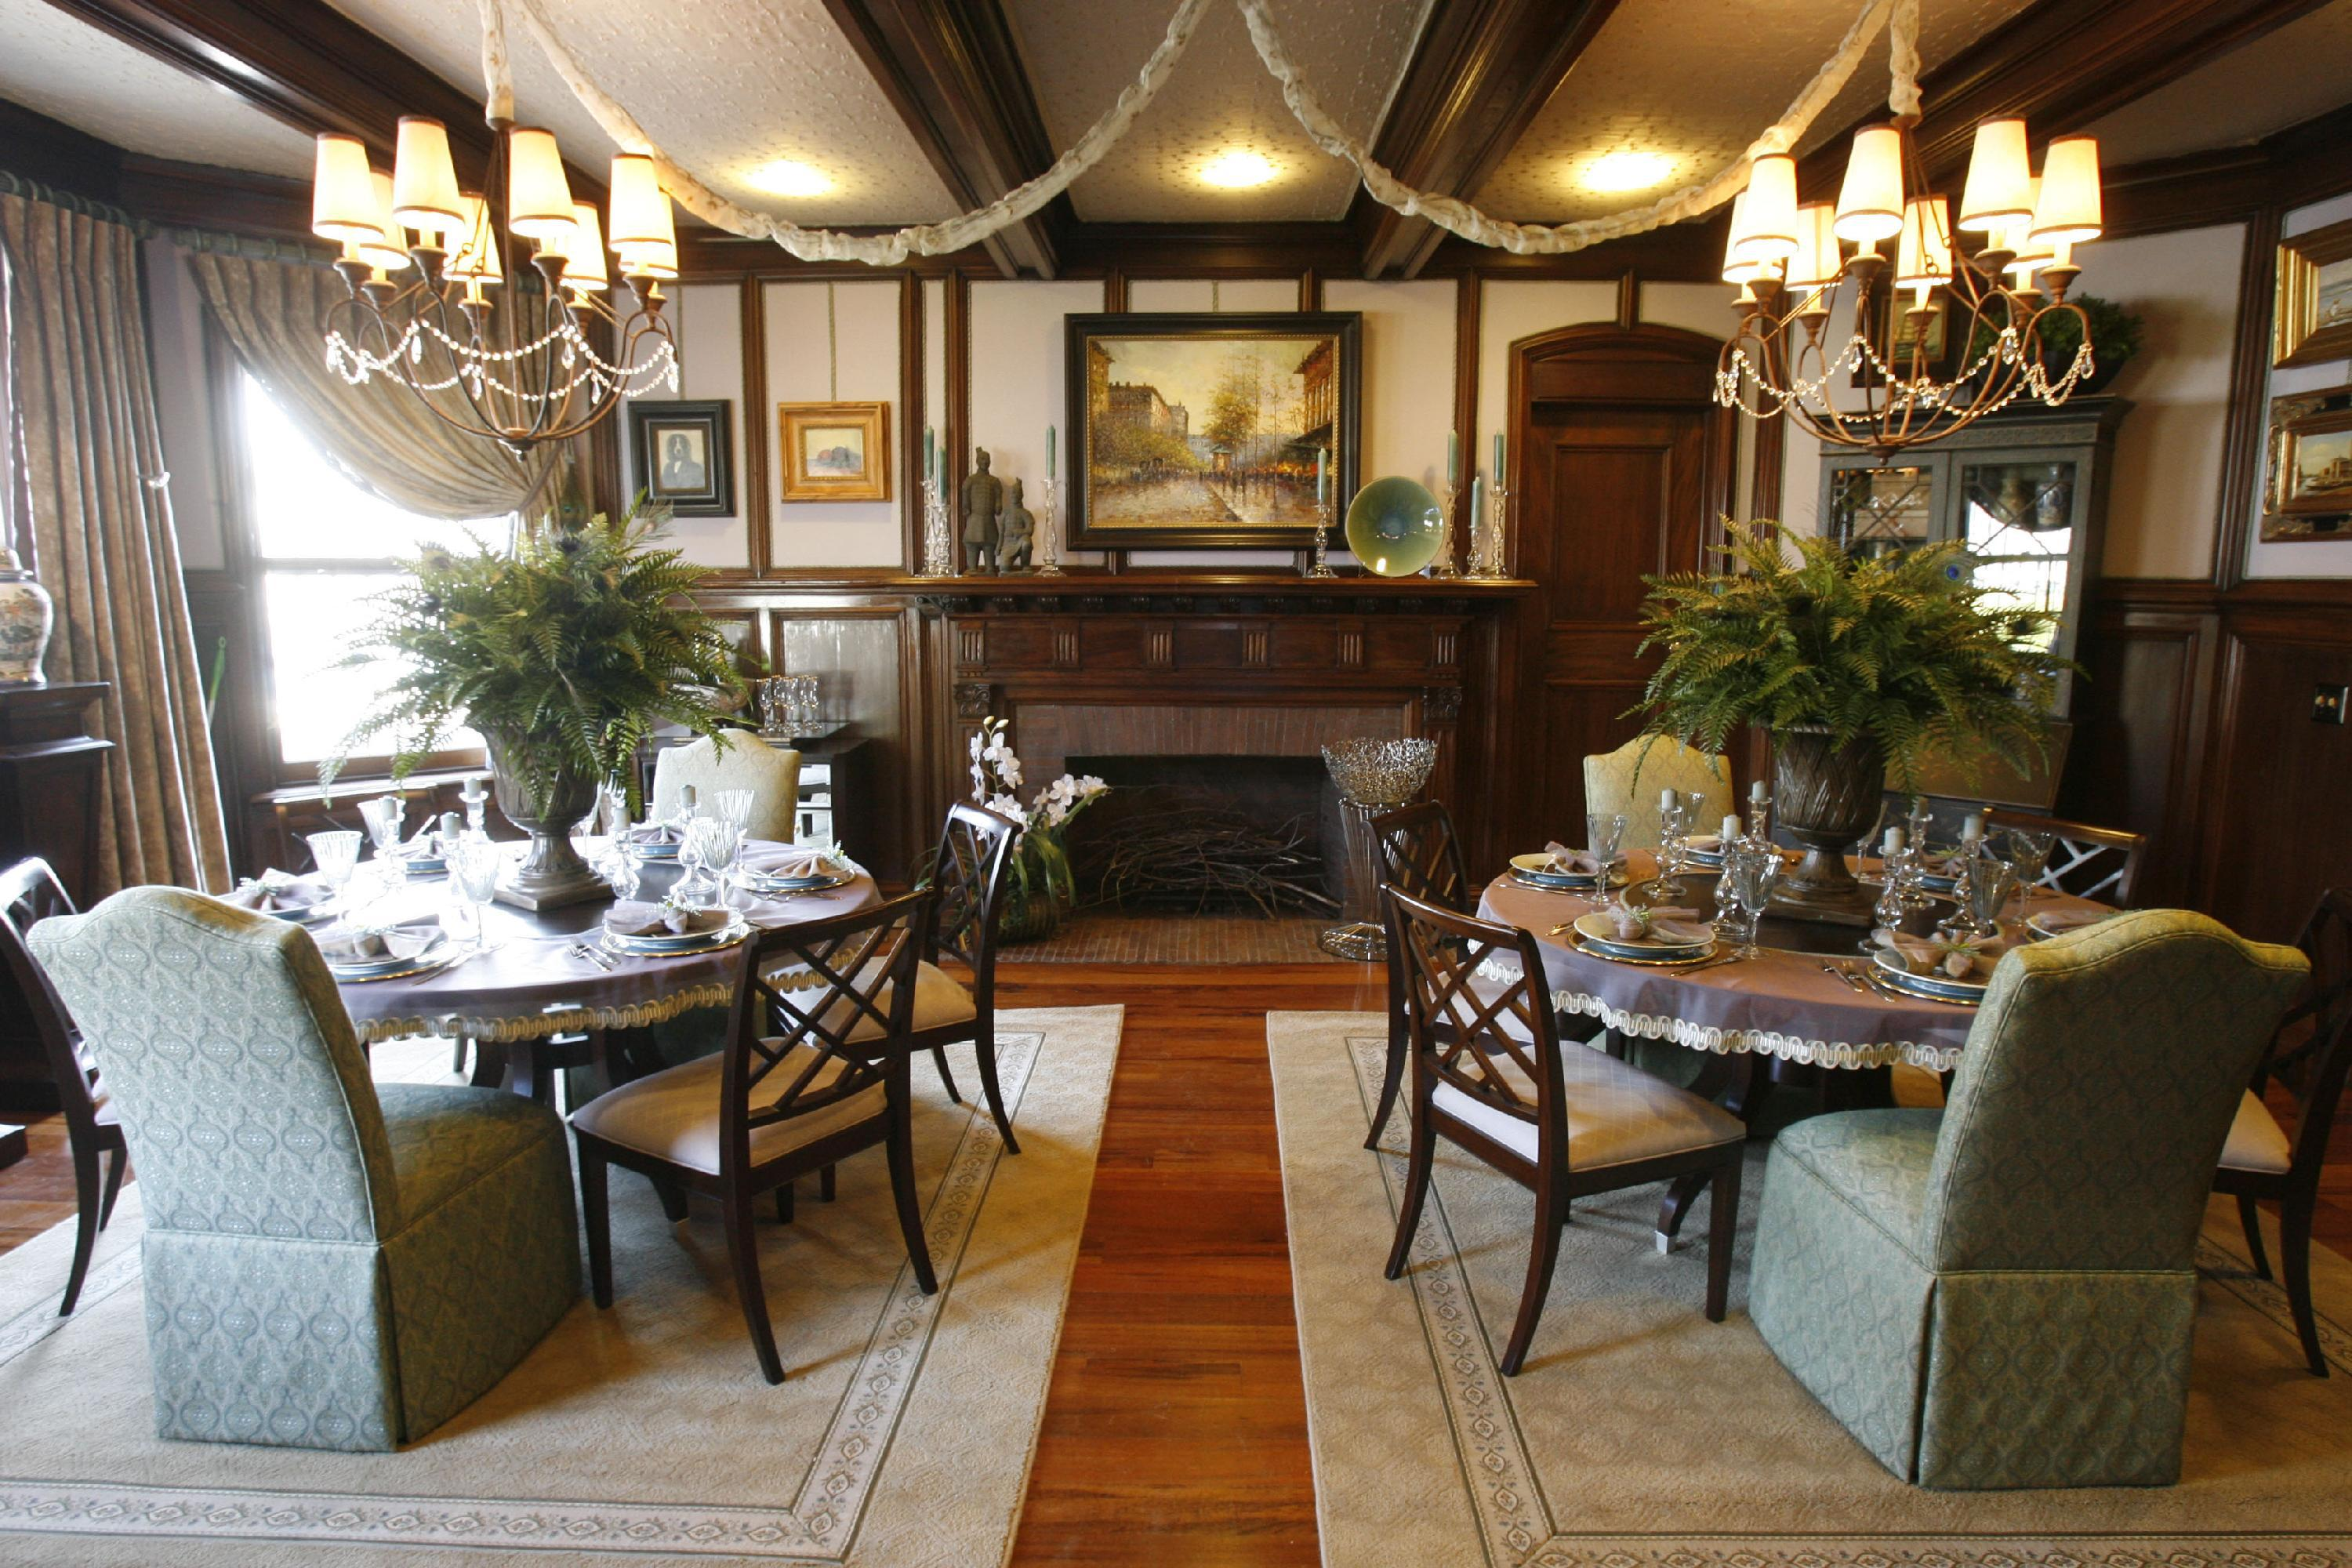 Two Round Dining Tables Were Found In The Dining Room Of Show House 2007,  The